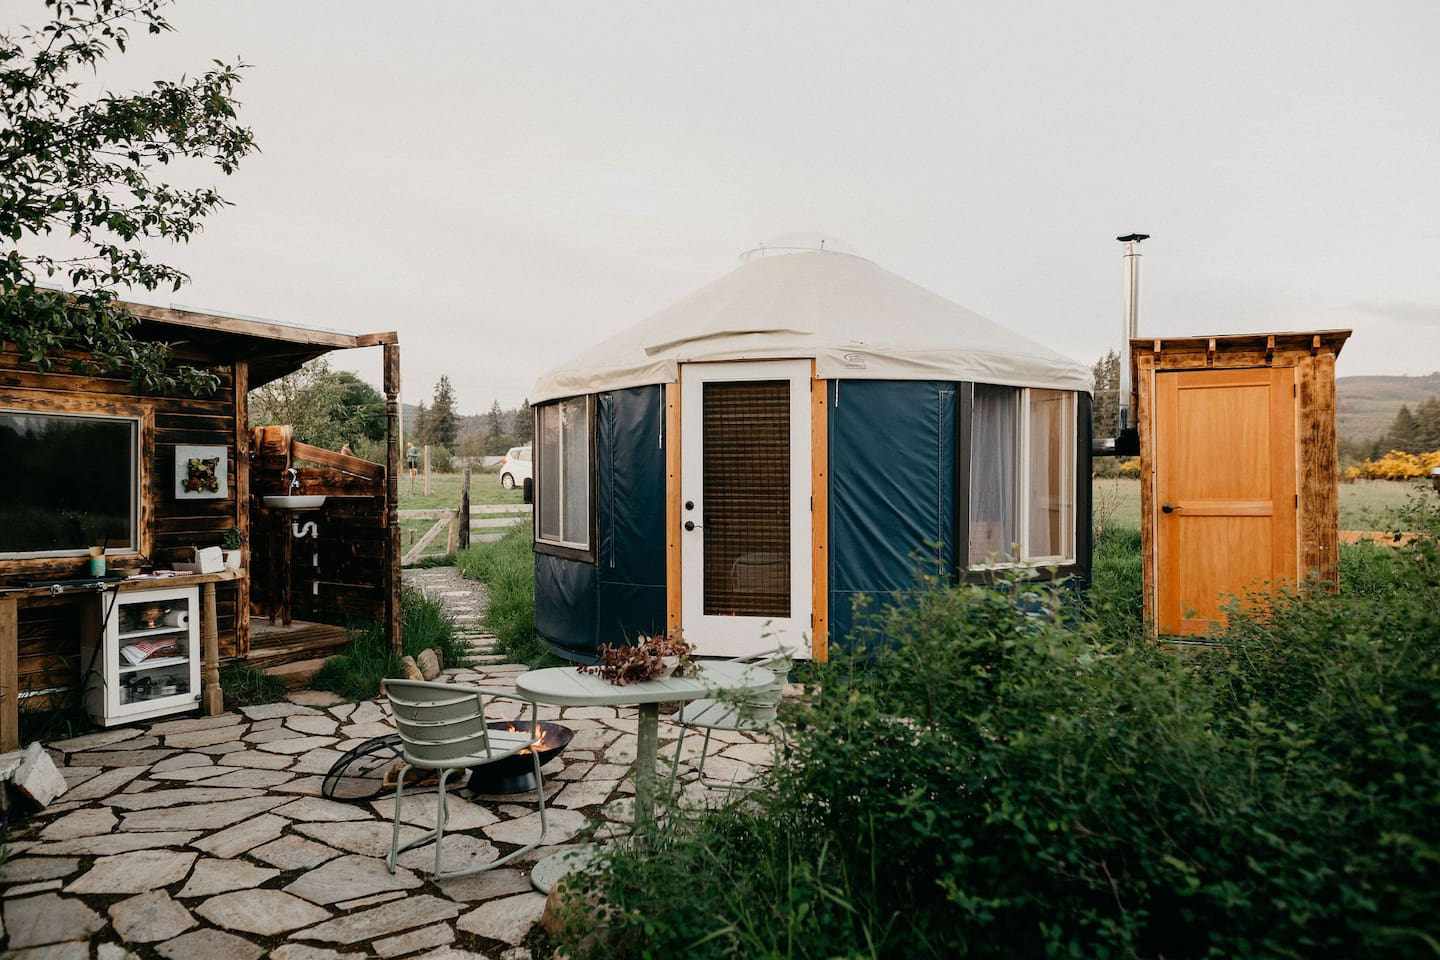 The average cost to stay in this yurt is $115